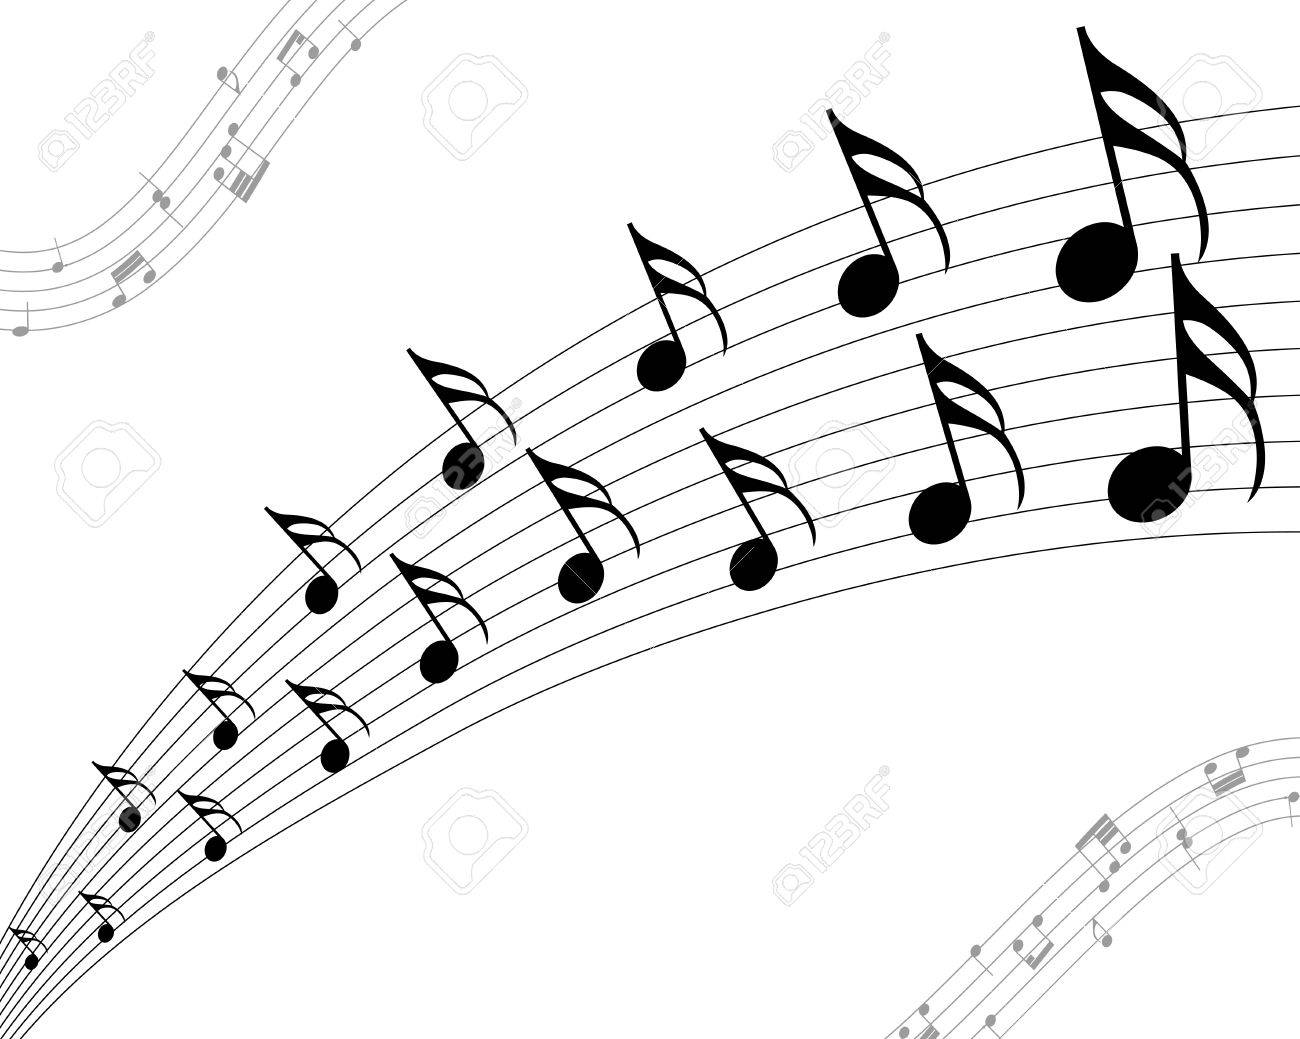 vector musical notes staff background for design use royalty free rh 123rf com Music Notes SVG Music Notes Symbols